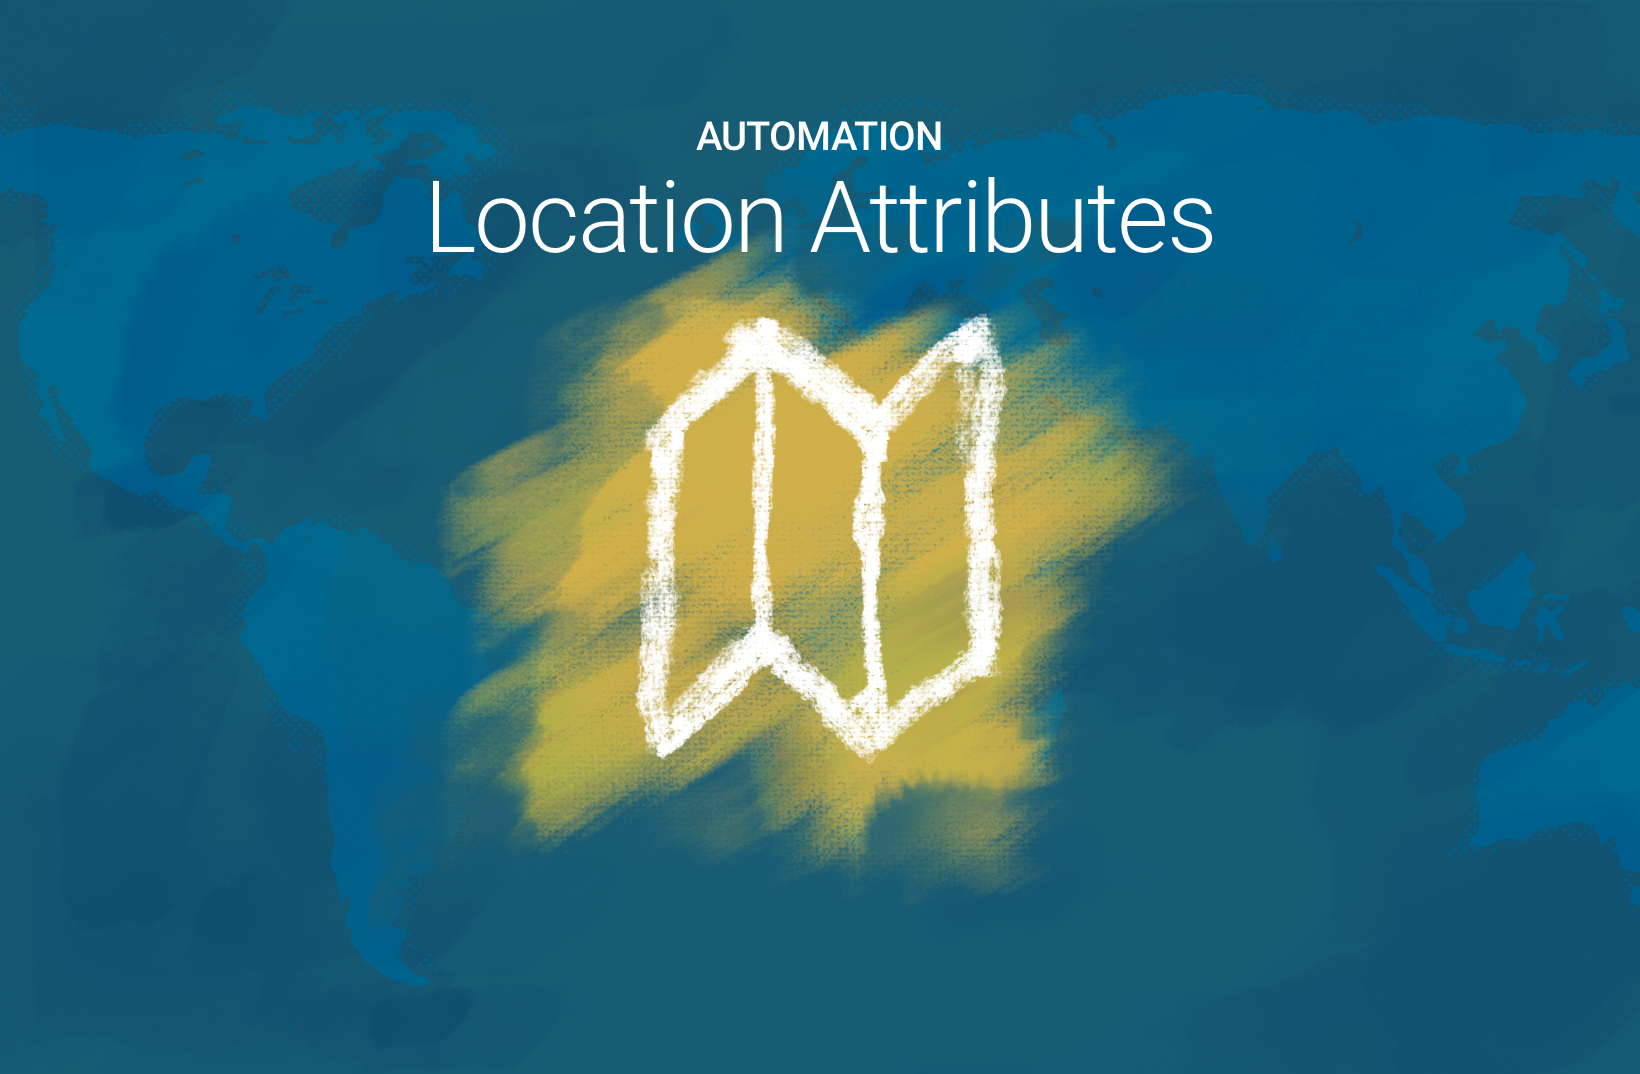 UI Support for Location (Region) Attributes